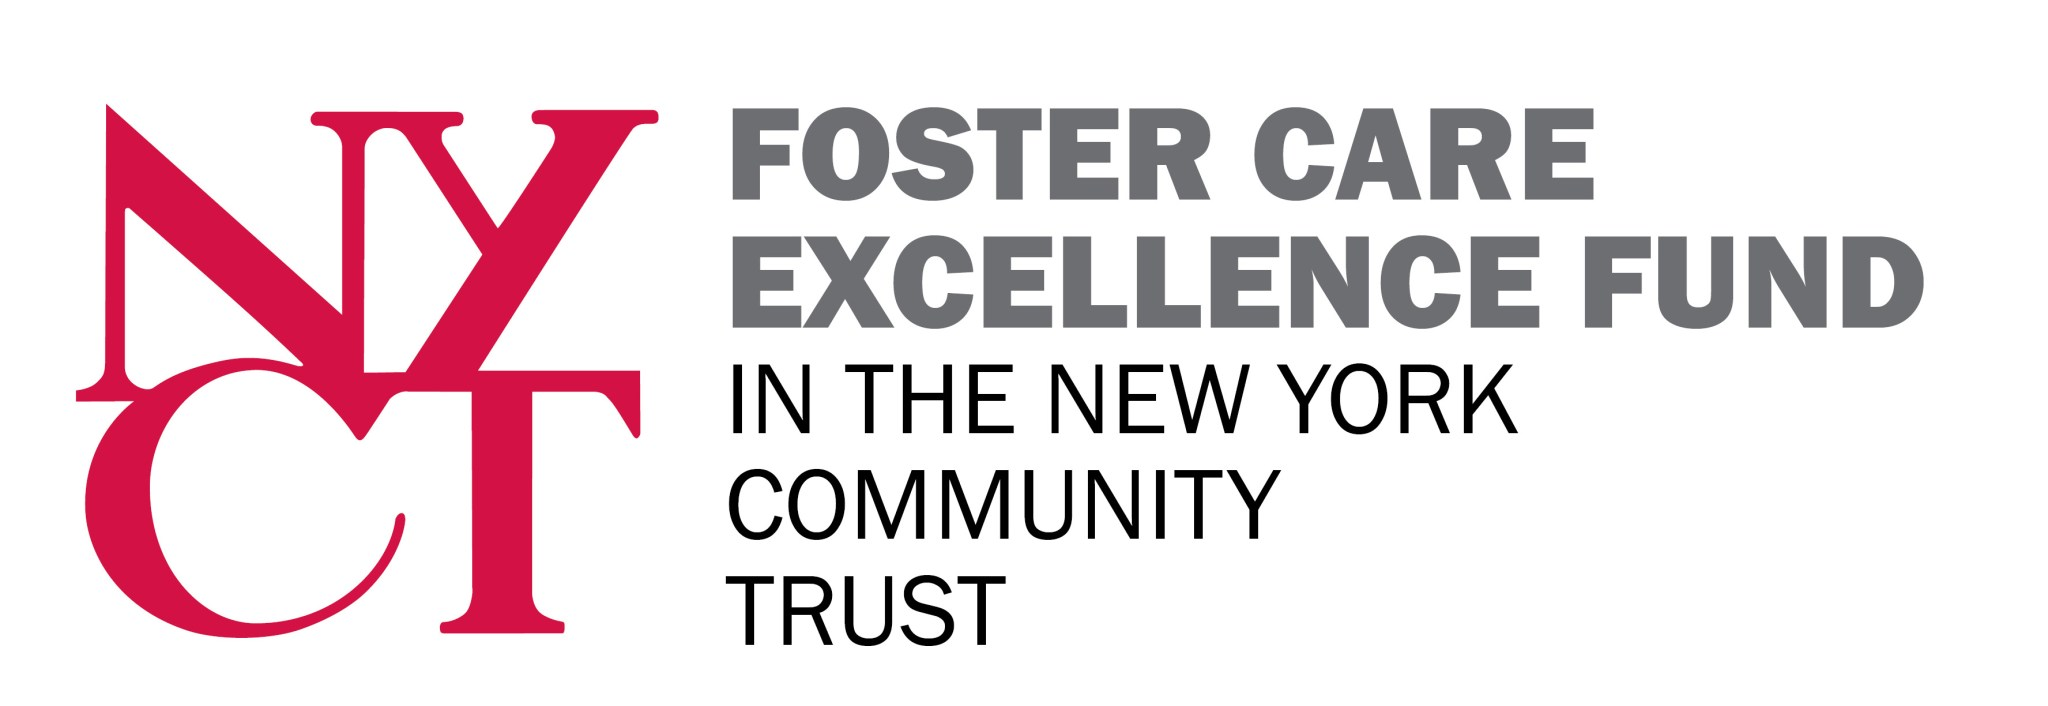 Foster Care logo